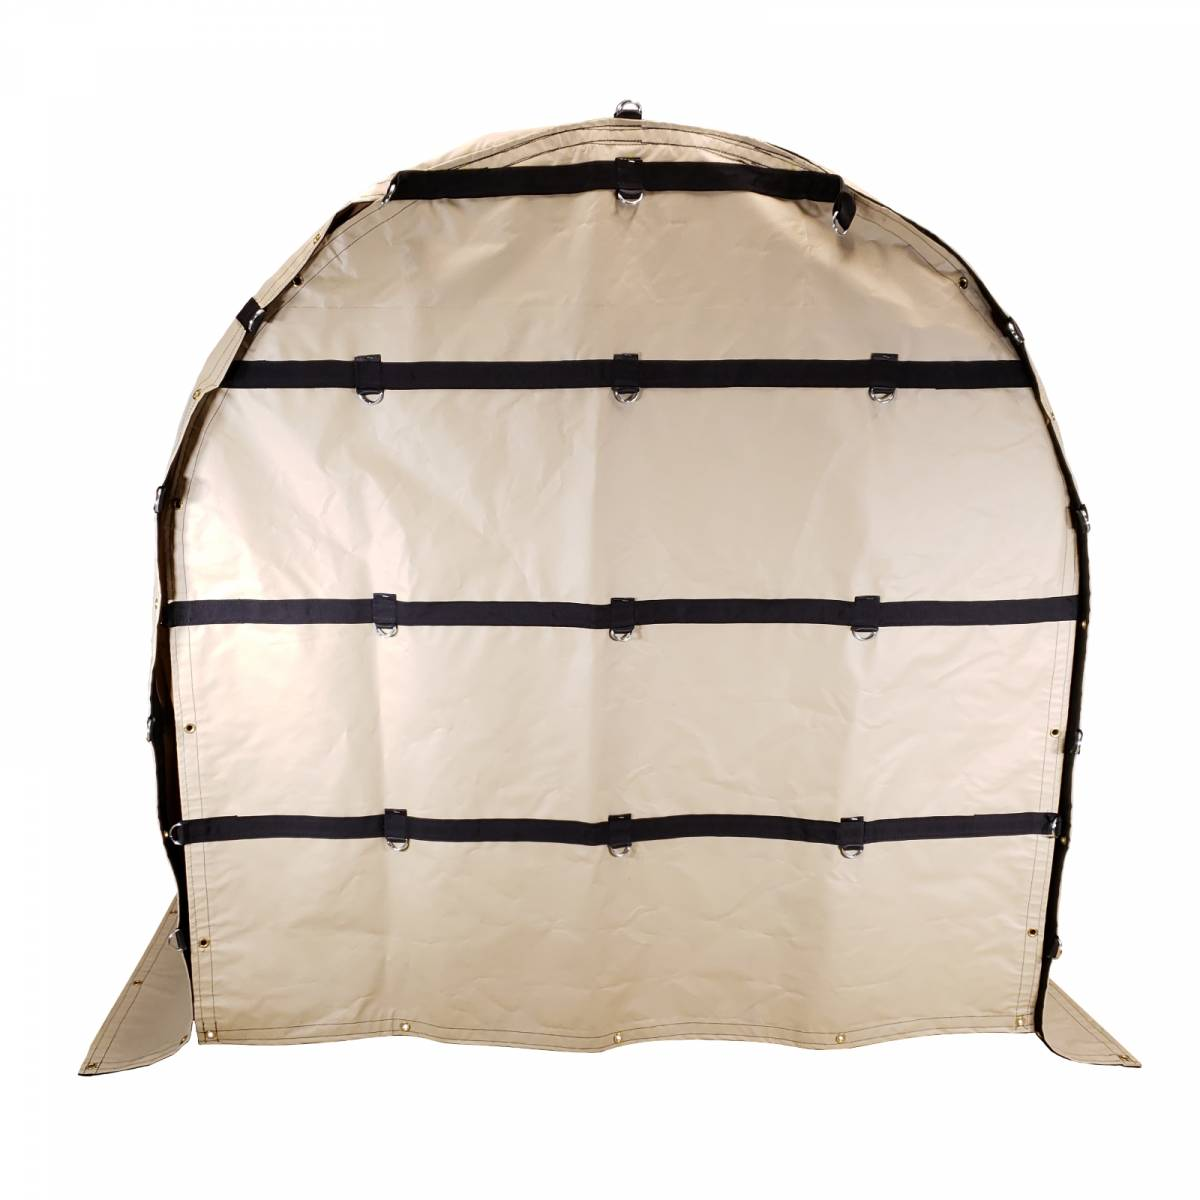 Flat Coil Bag Truck Tarp For Rolled Steel On Flatbed